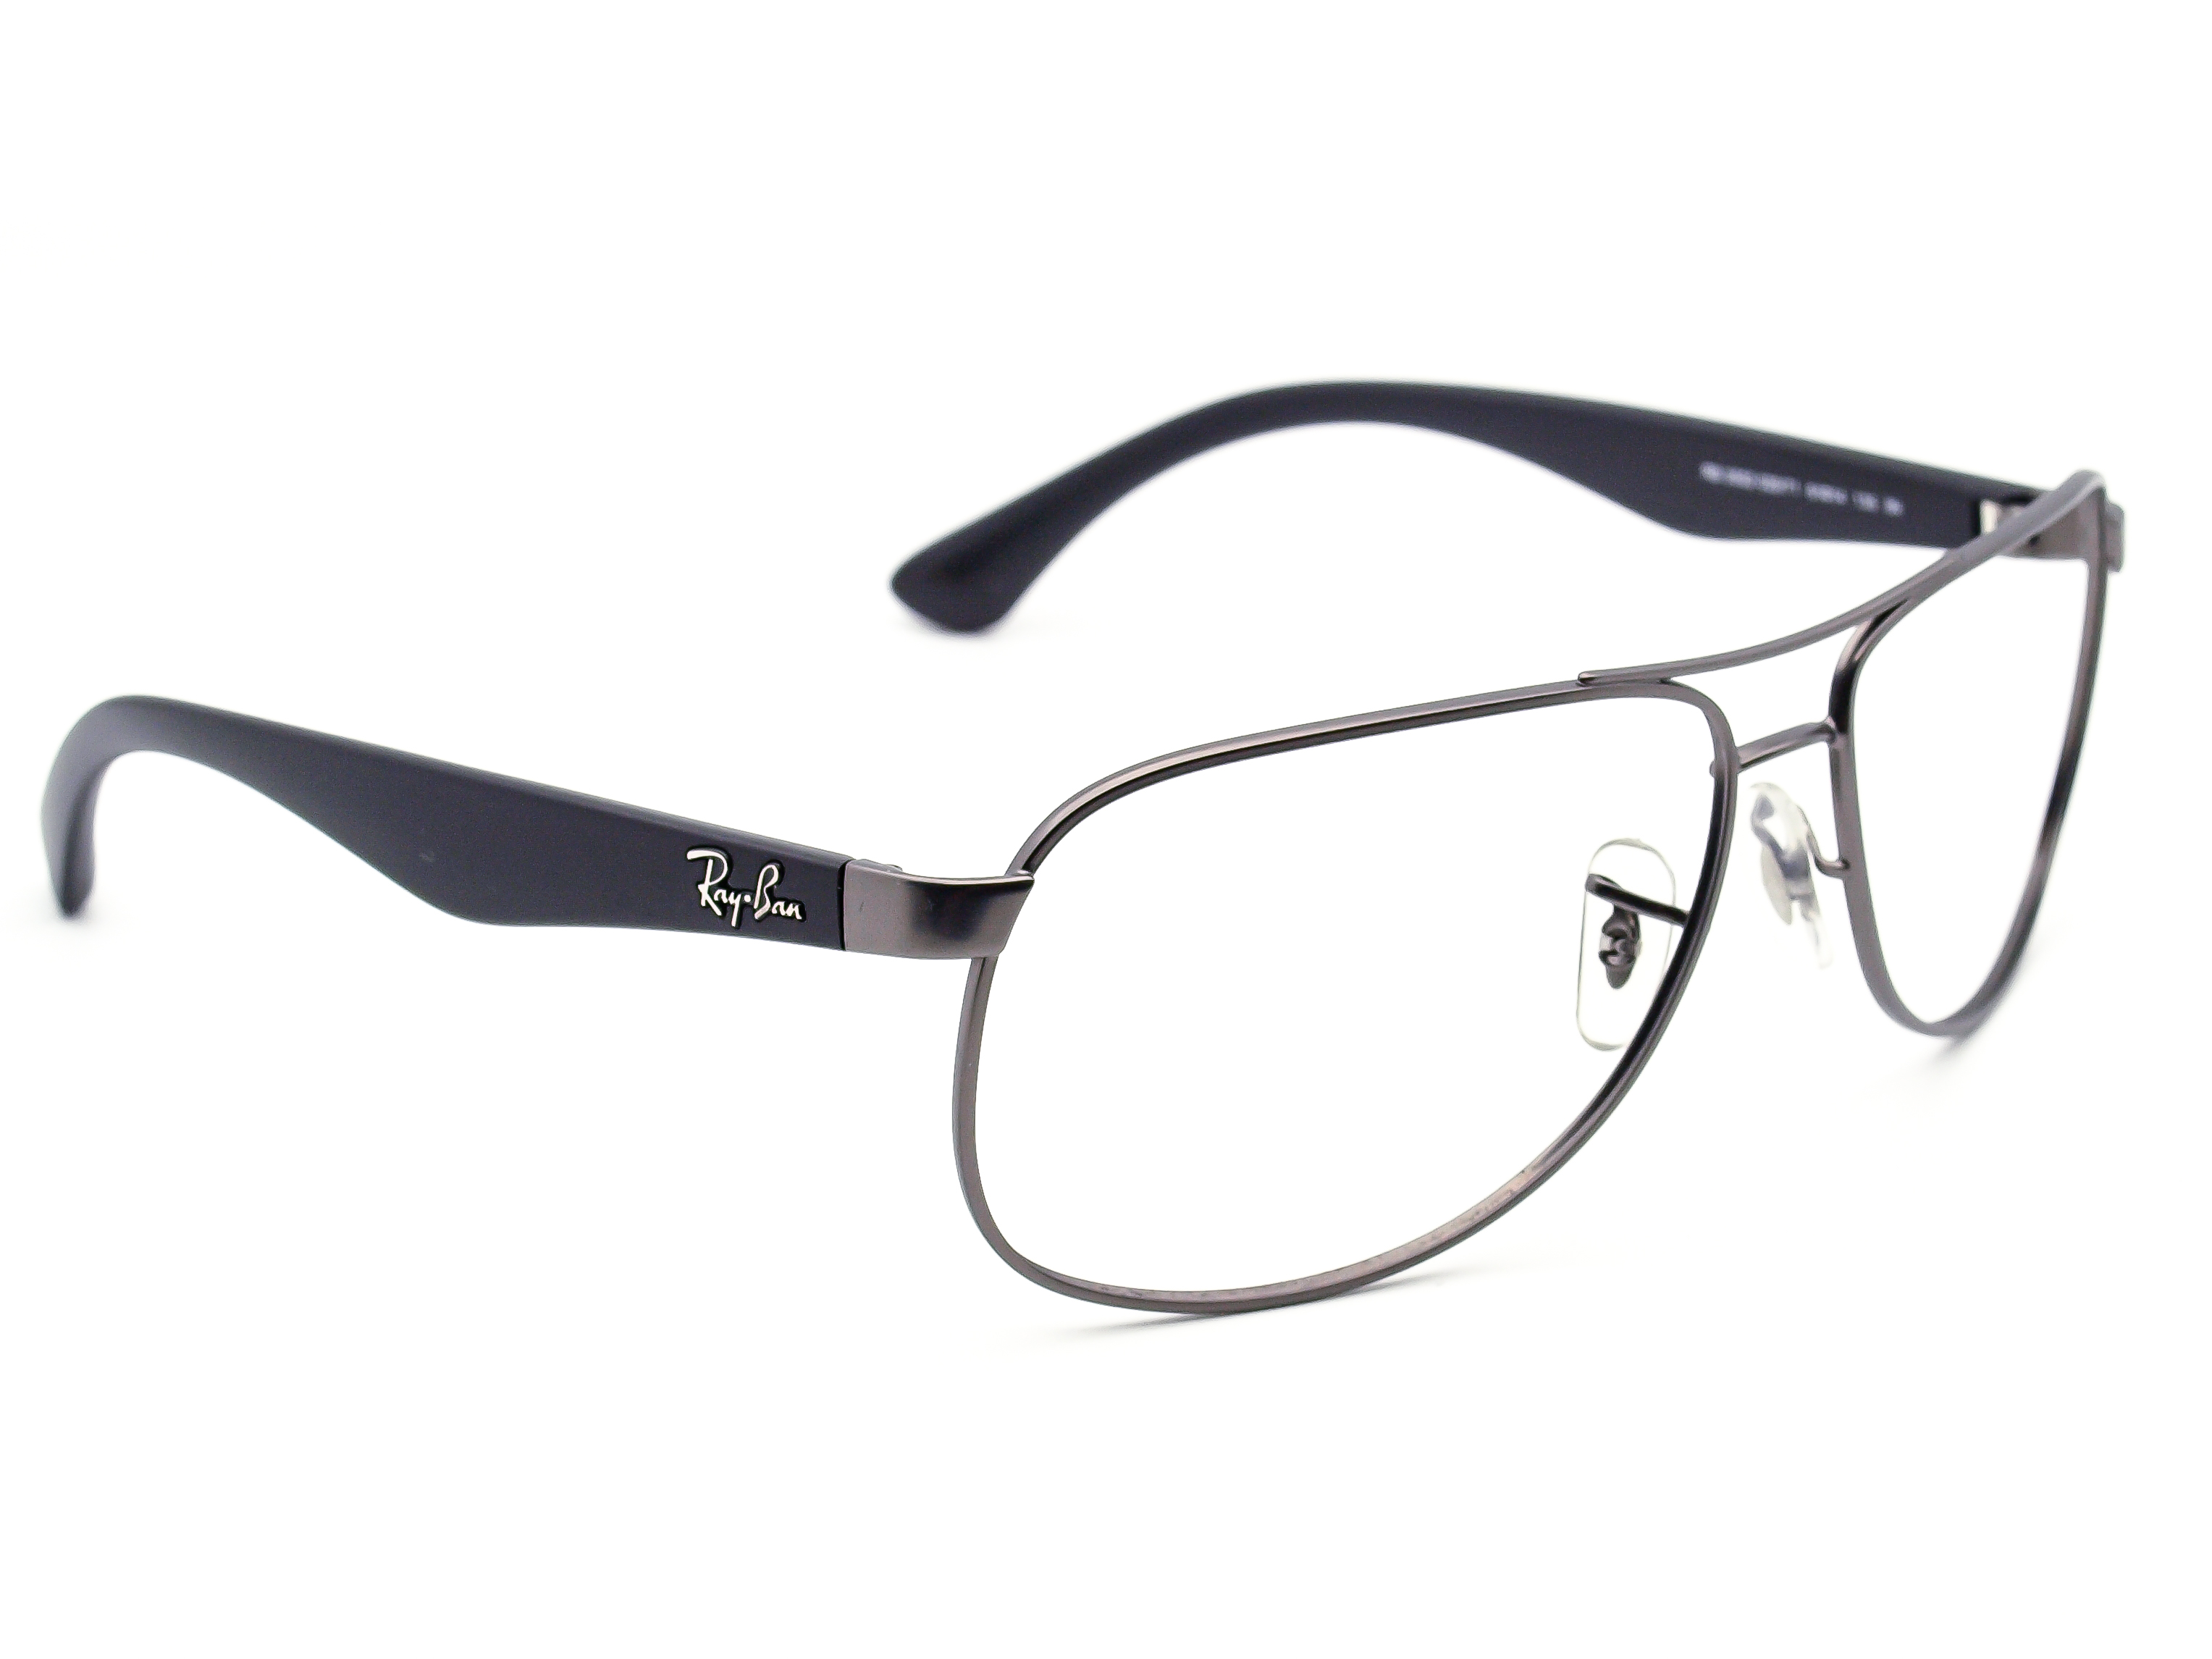 Ray Ban RB 3502 029/71 Sunglasses Frame Only